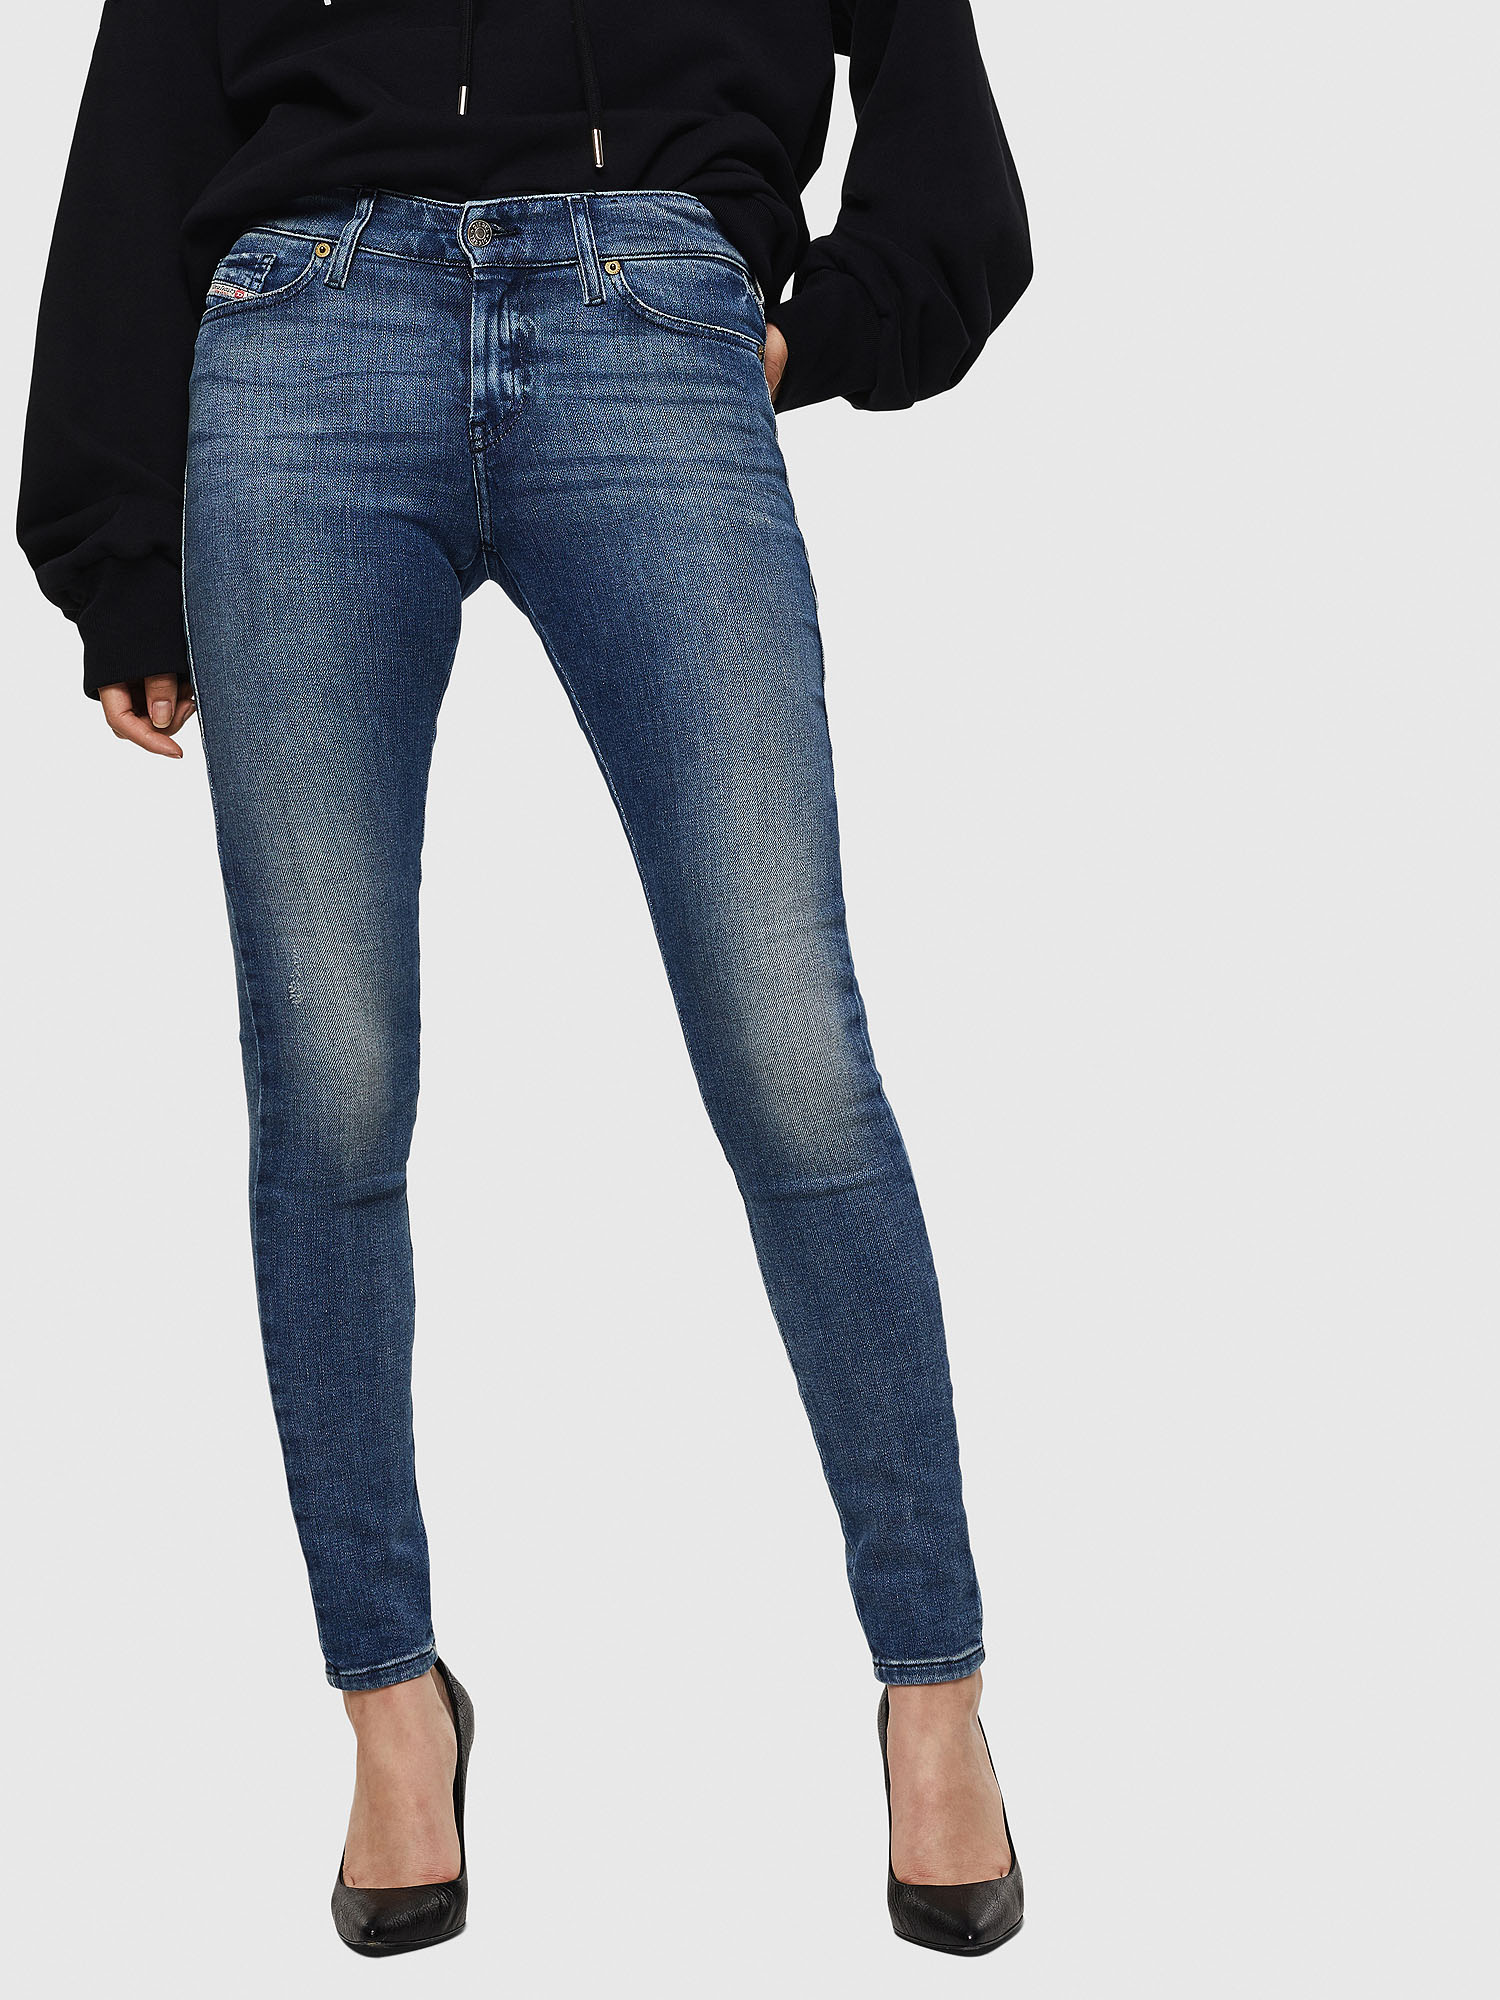 Diesel - Slandy 083AQ, Medium blue - Jeans - Image 1